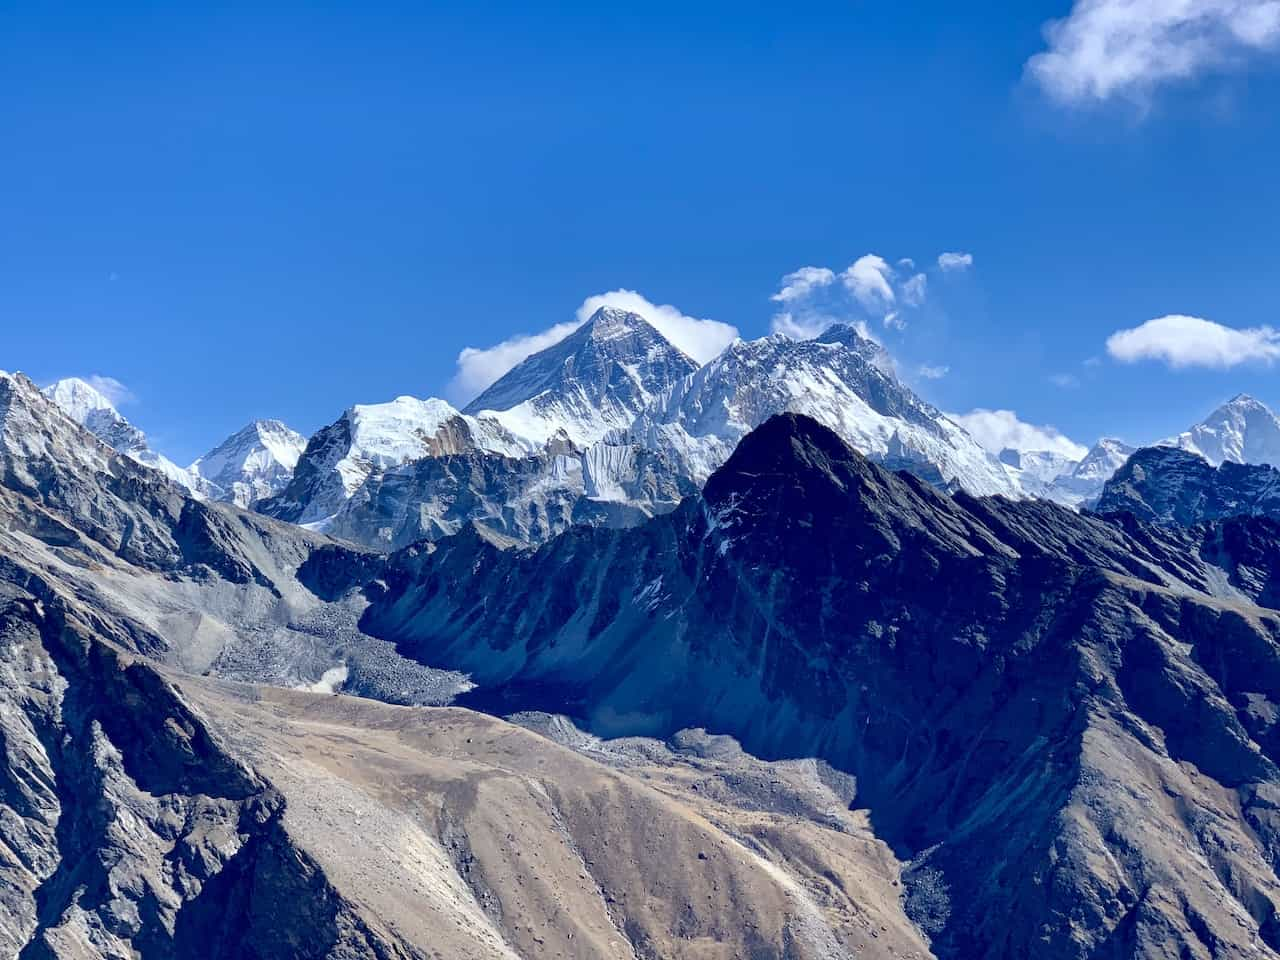 Mount Everest Viewpoint from Gokyo Ri